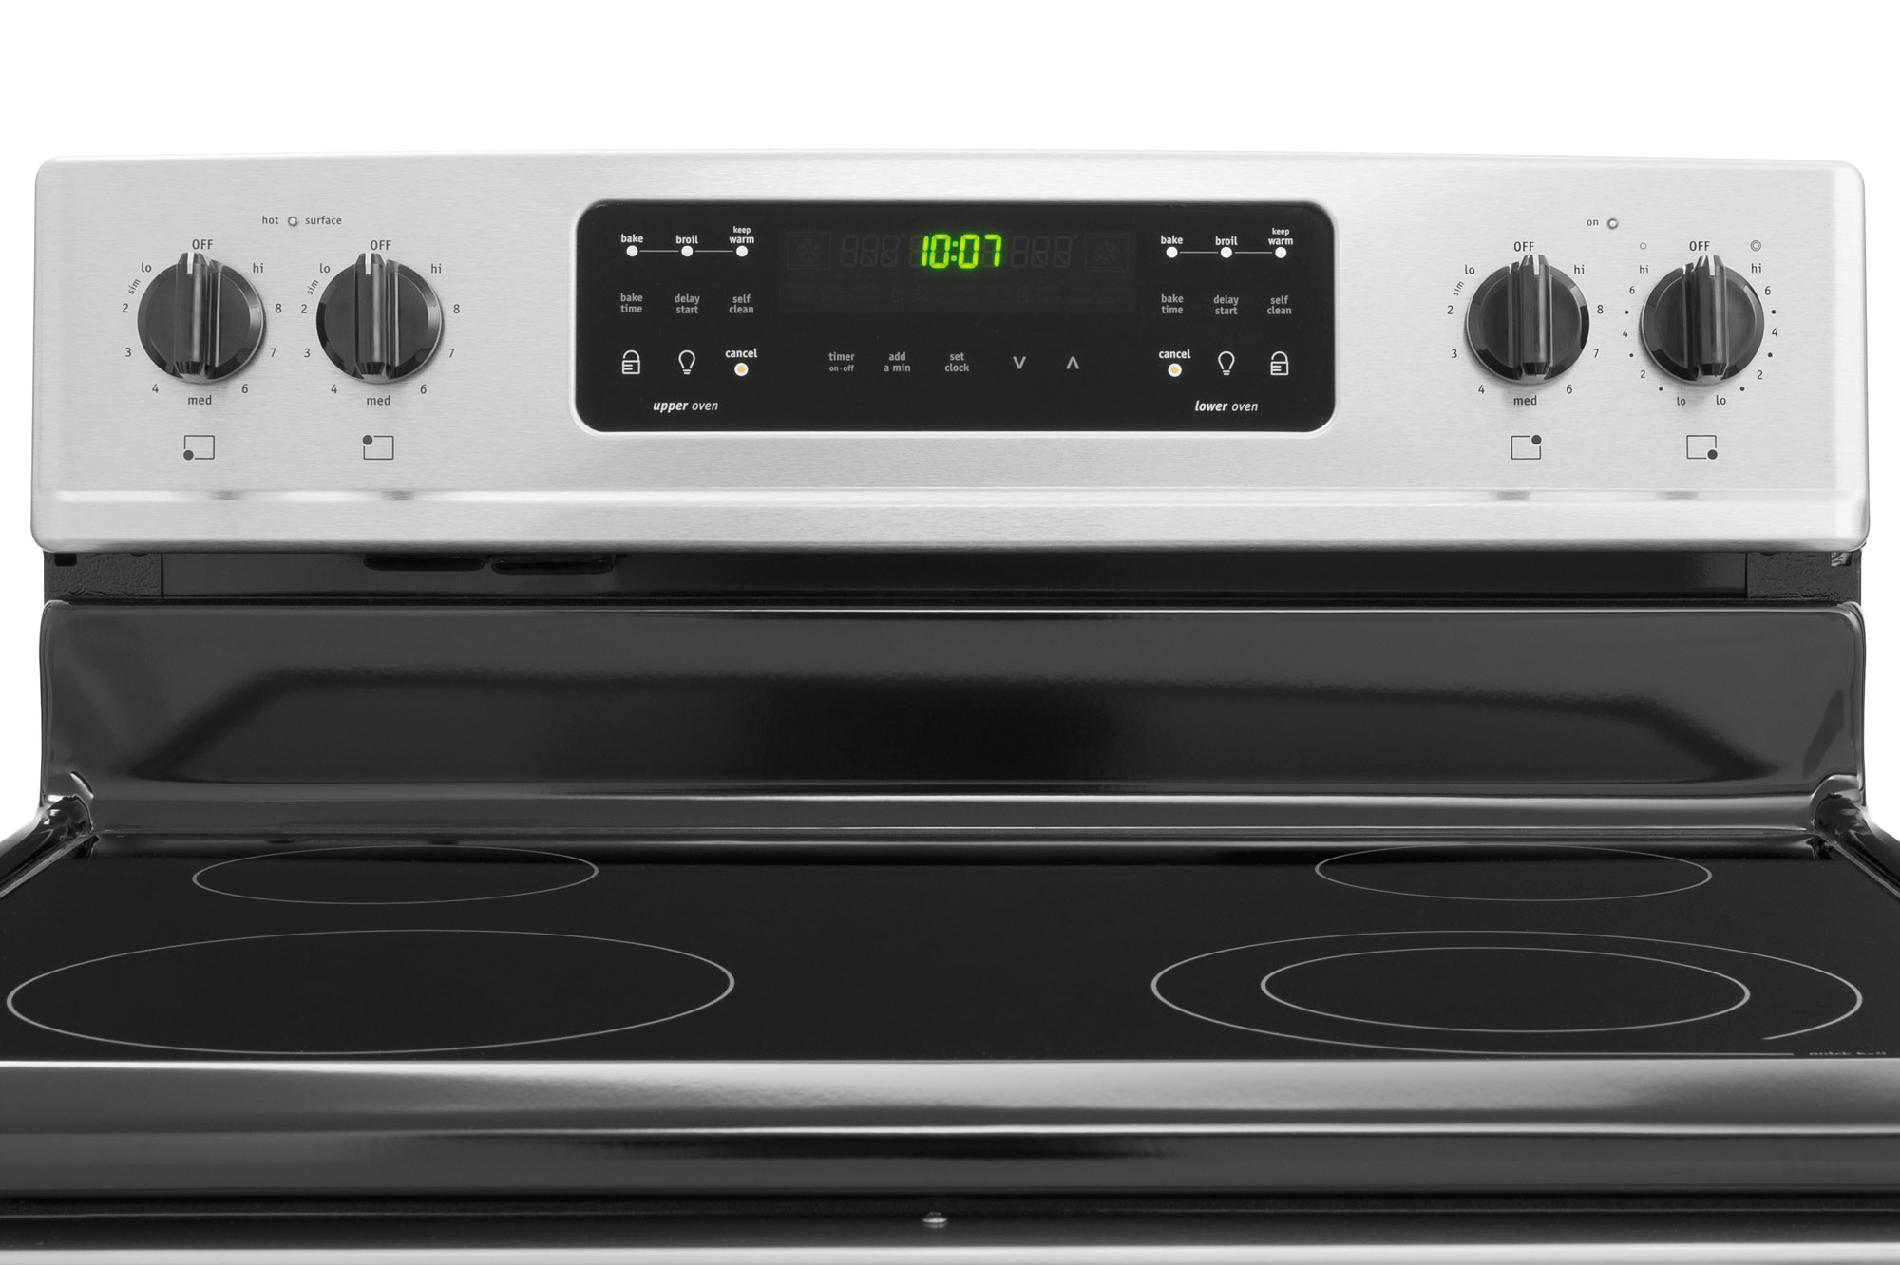 Frigidaire Gallery Gallery 6.64 cu. ft. Double-Oven Electric Range - Stainless Steel